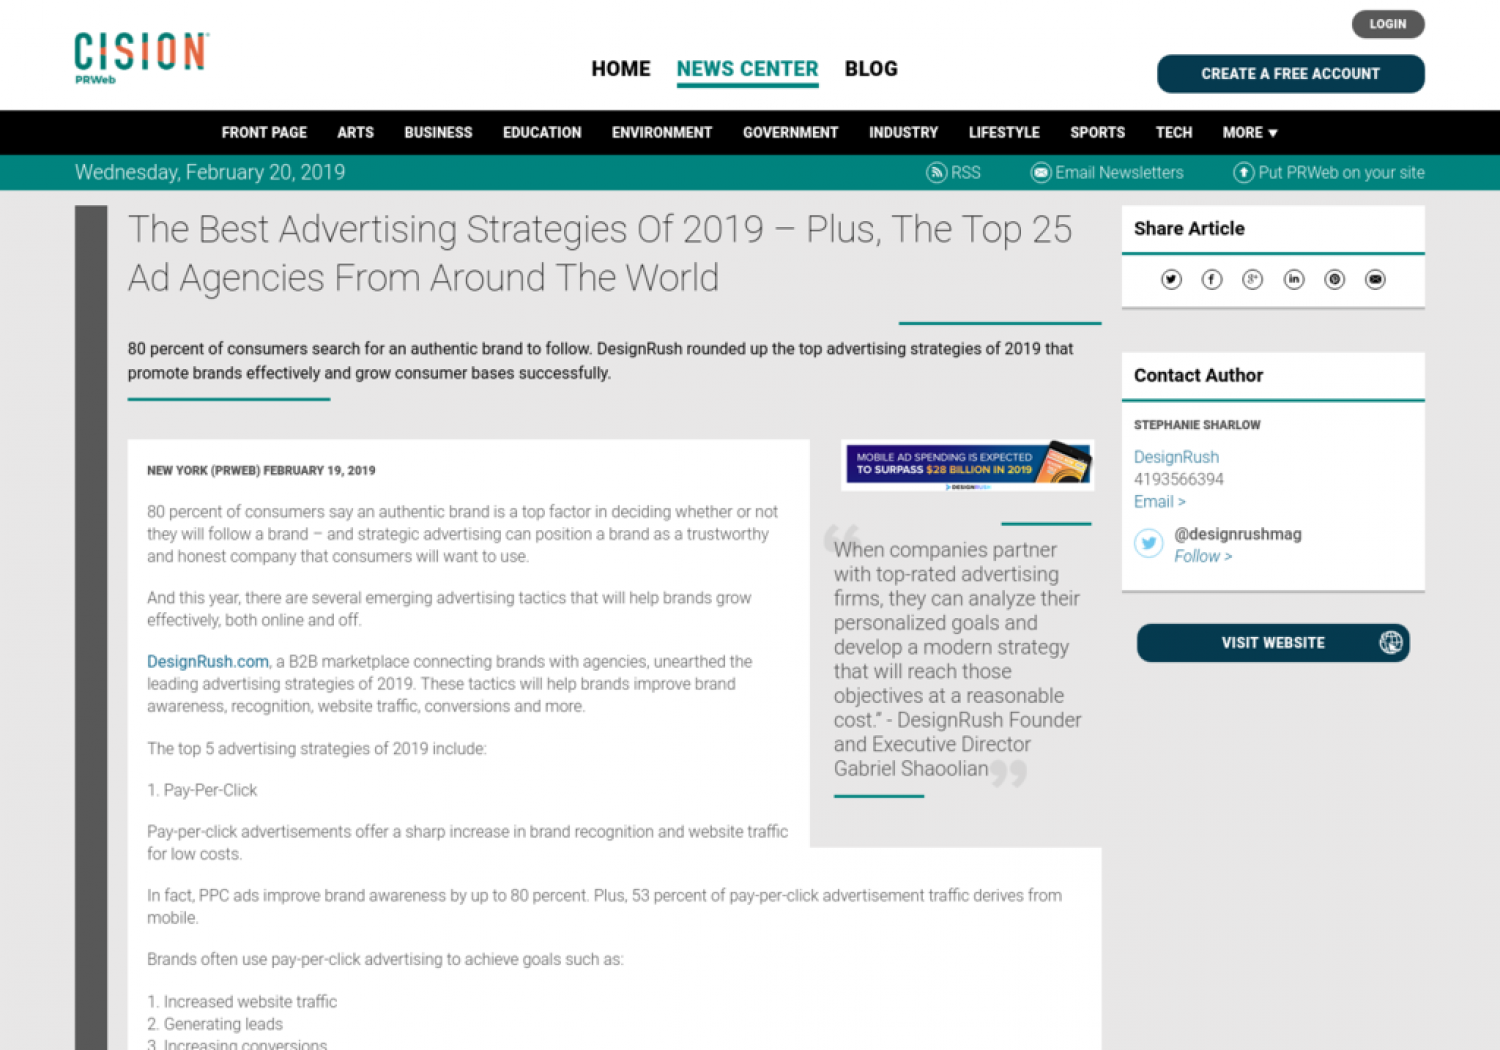 The Best Advertising Strategies Of 2019 – Plus, The Top 25